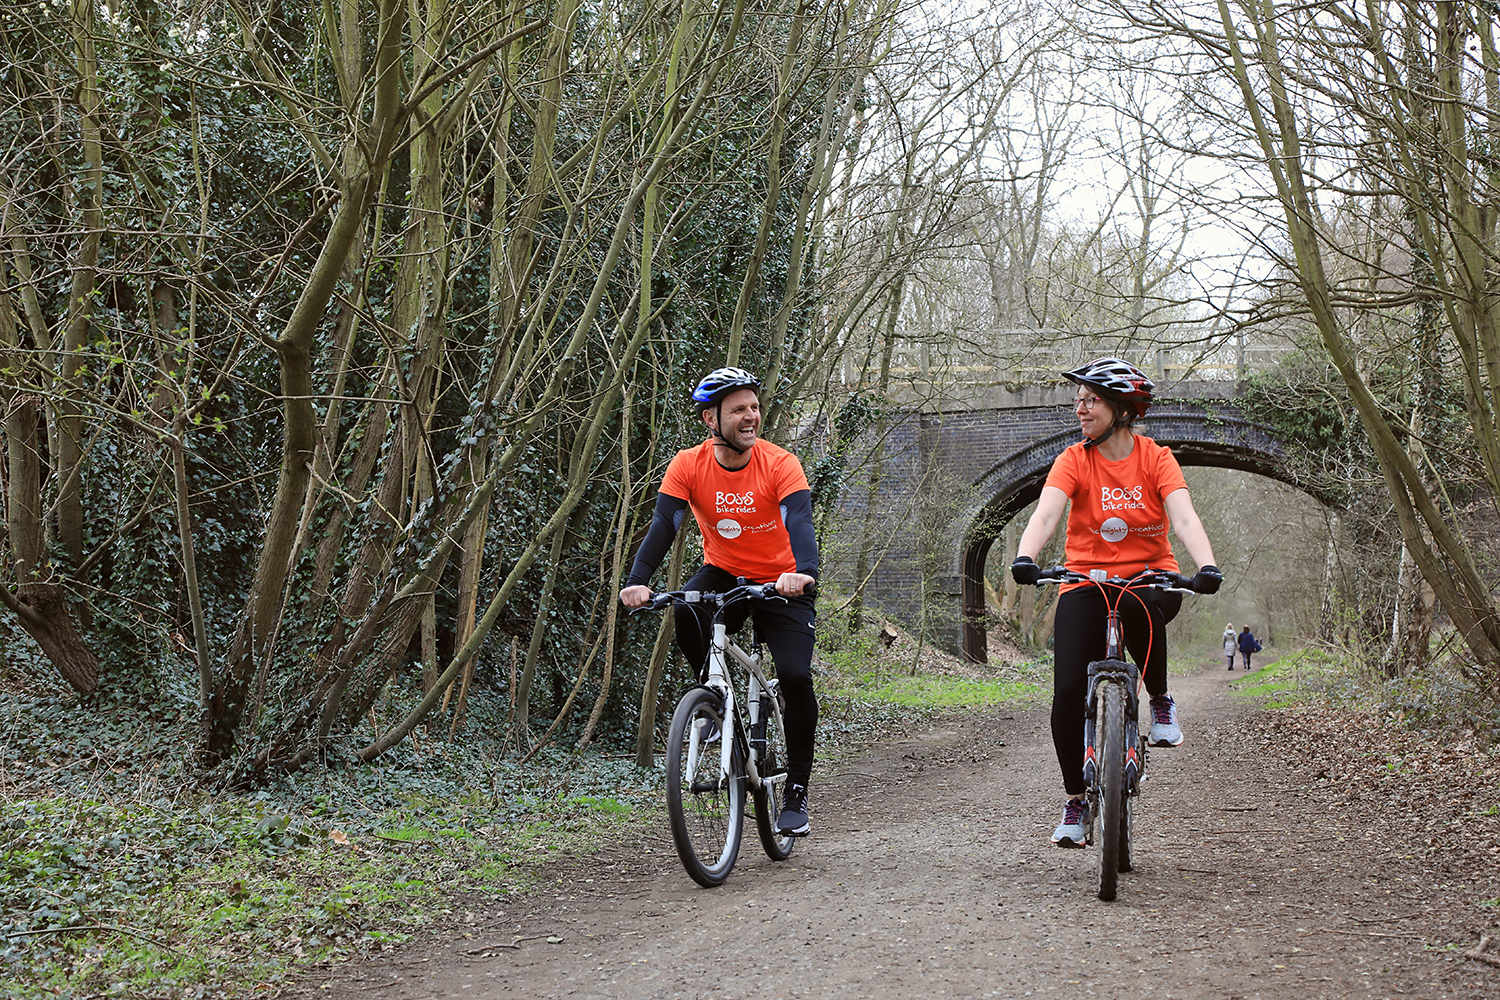 Charity bosses switch gears to raise £100,000 for young people by peddling new campaign